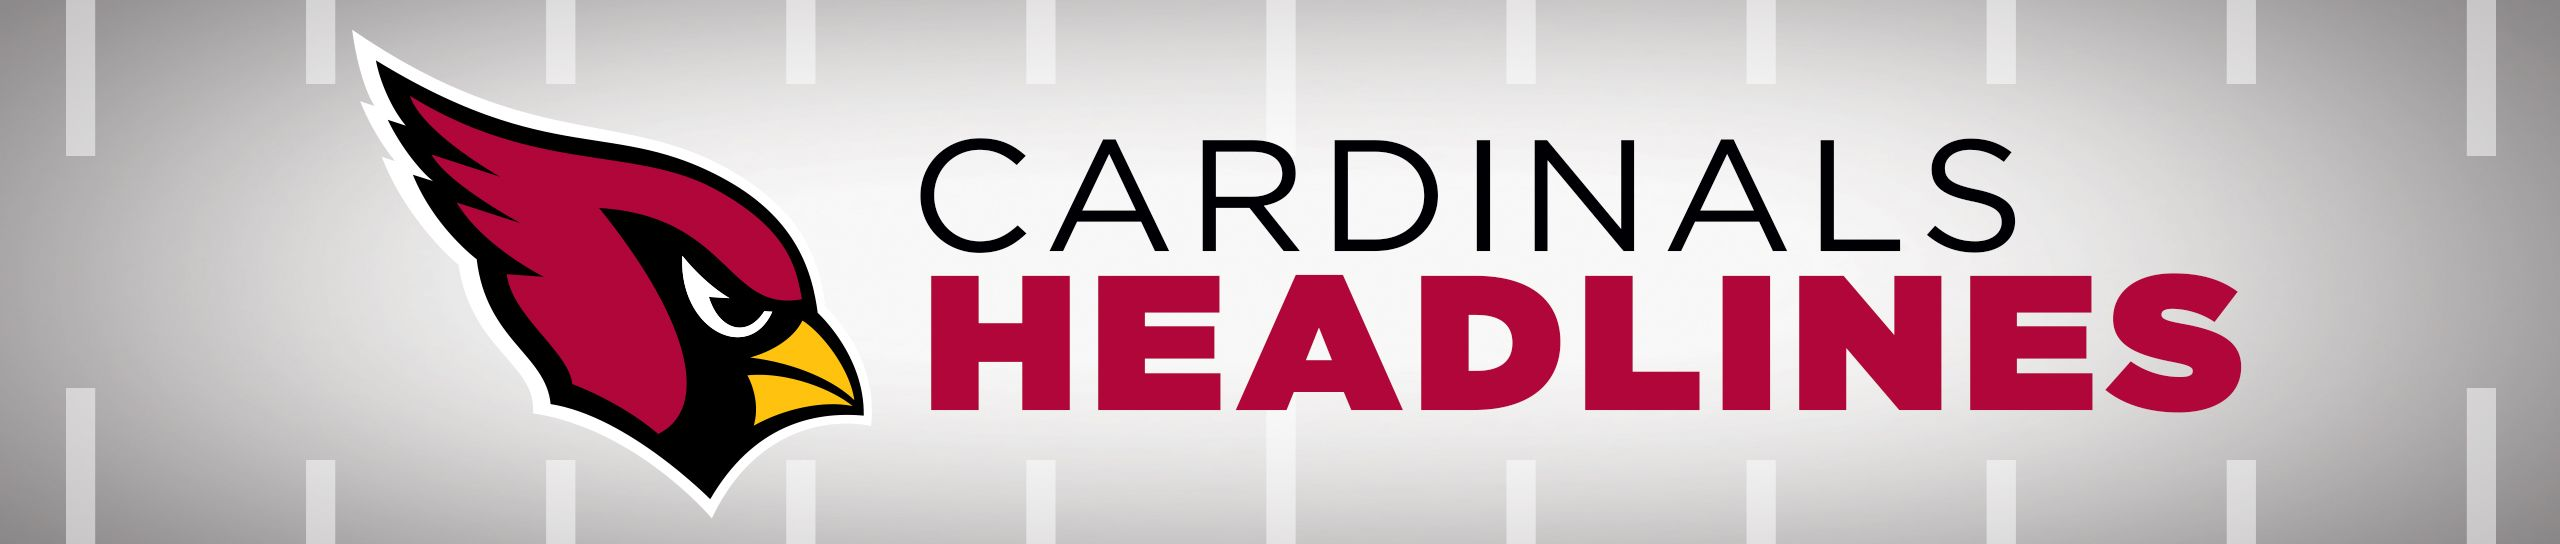 AZC_Cardinals Headlines_2560x544